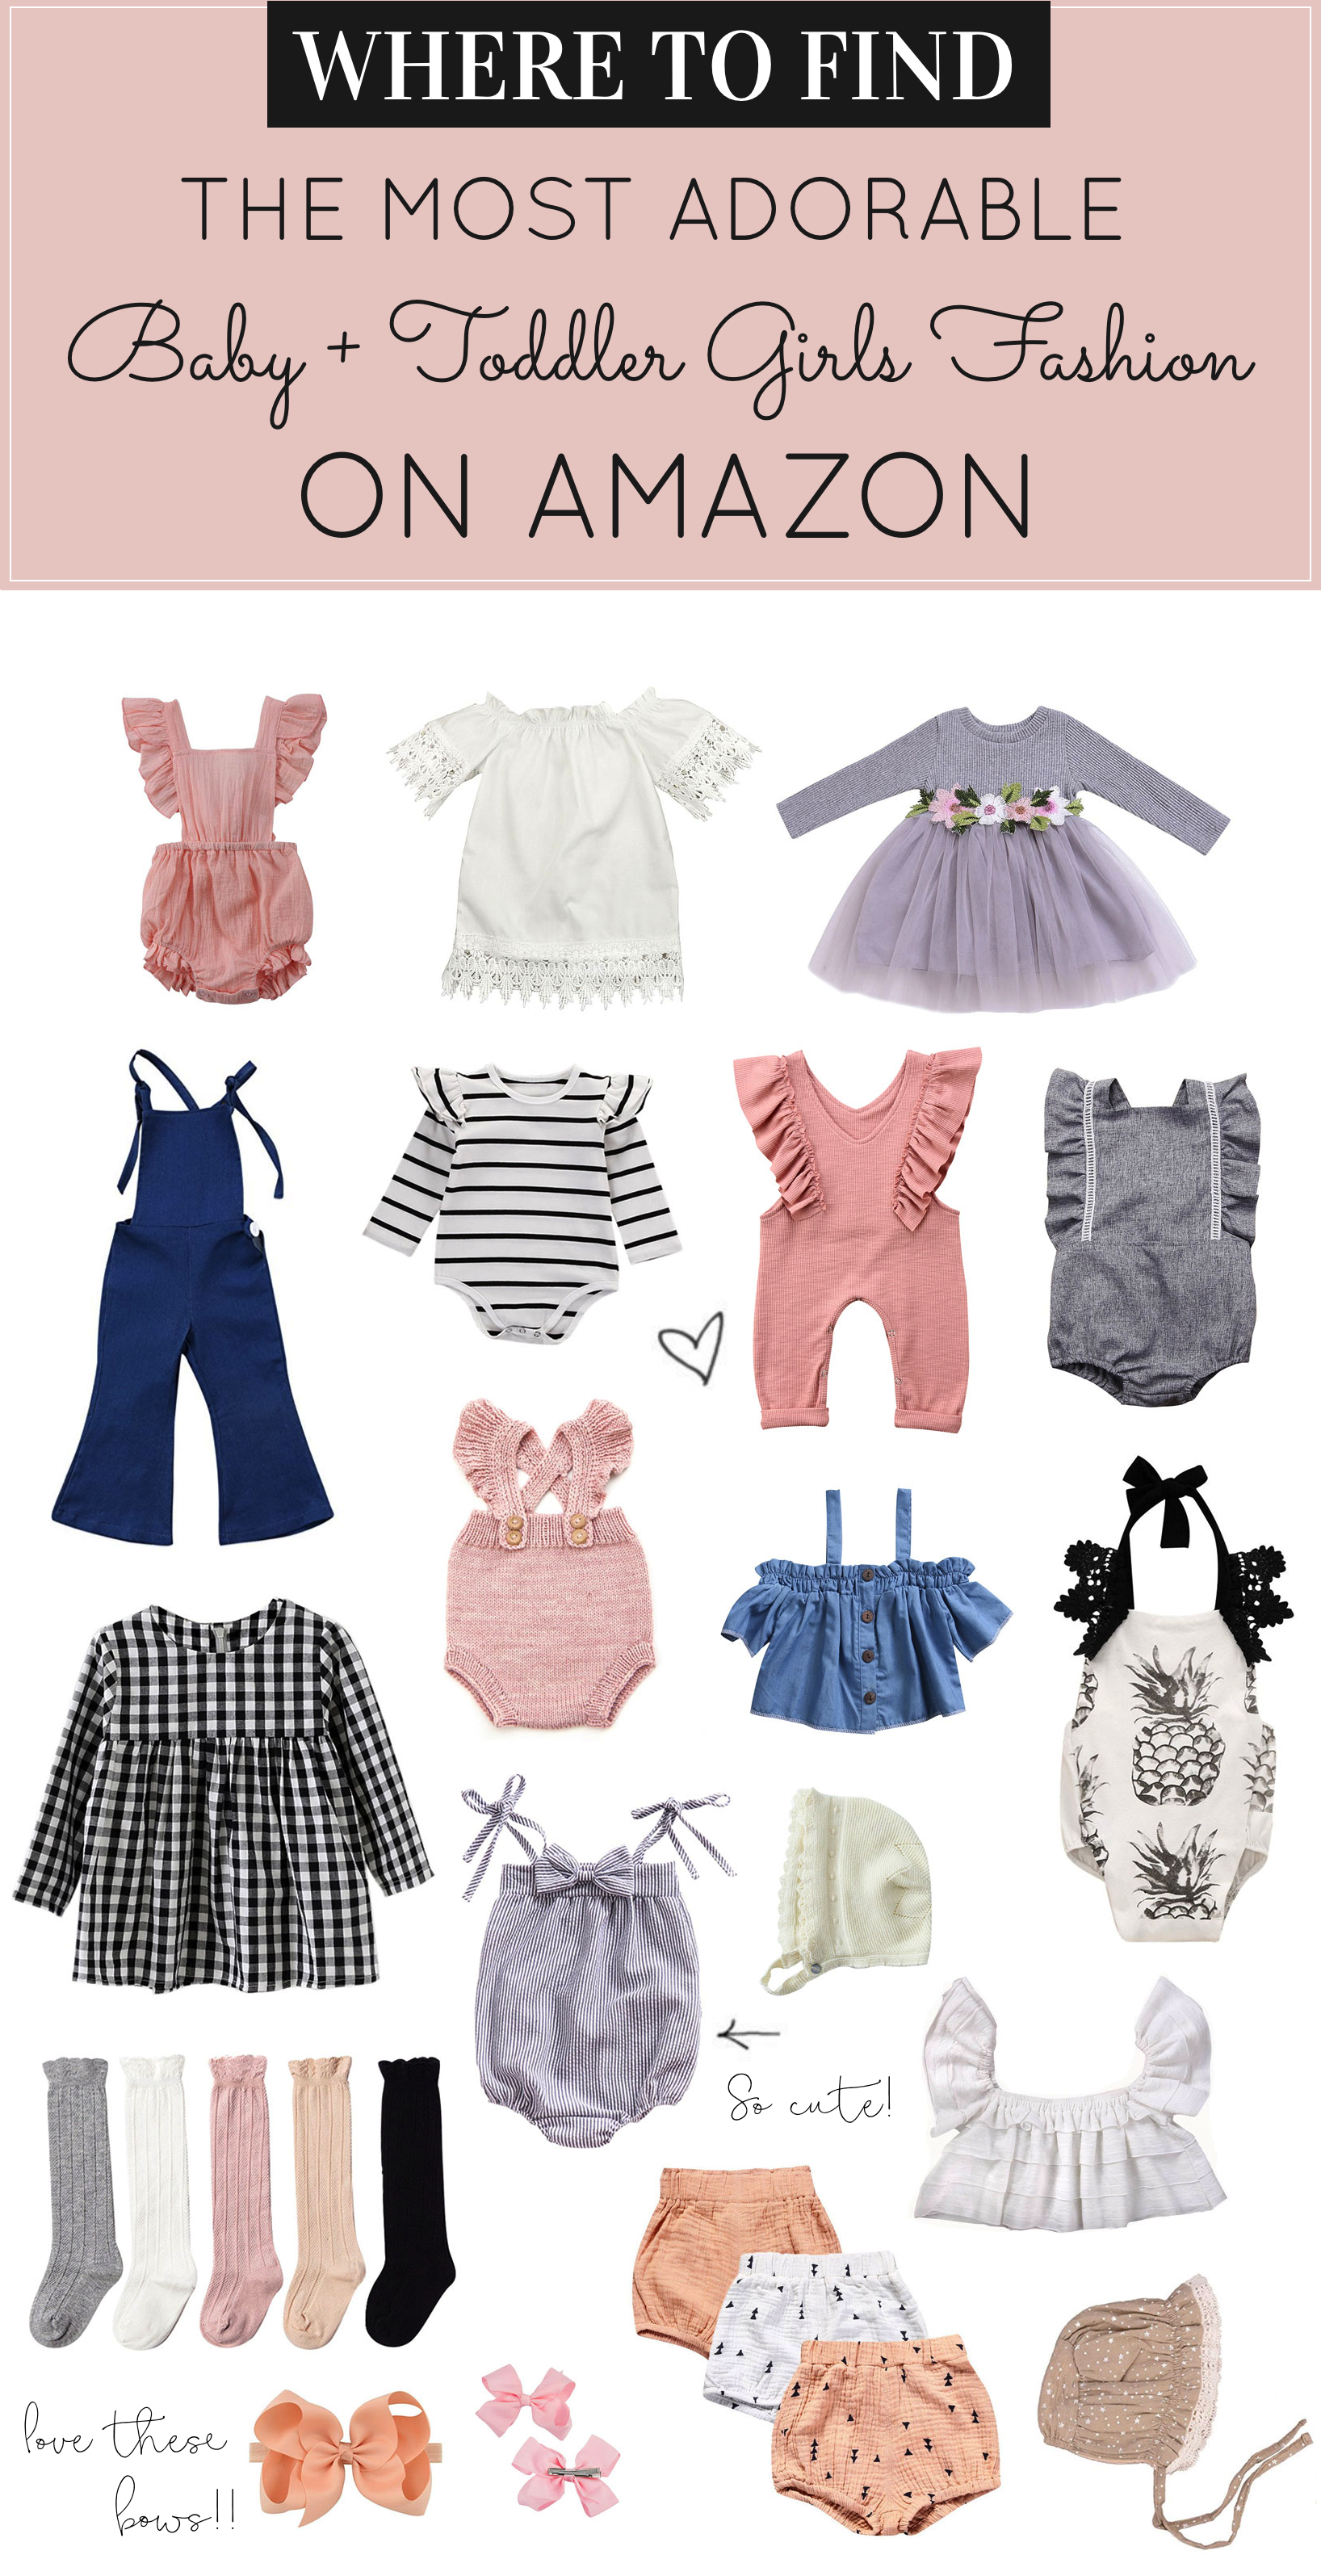 Searching for adorable baby girl and toddler outfits and accessories on a budget? Did you know Amazon has some of the cutest affordable kids clothes out there? I'm rounding up 30 of my current favorite sweet-as-sugar baby girl and toddler outfits and accessories that I think you'll love! | glitterinc.com | @glitterinc - Adorable Amazon Outfits for Baby Girls and Toddlers by popular North Carolina style blogger, Glitter, Inc.